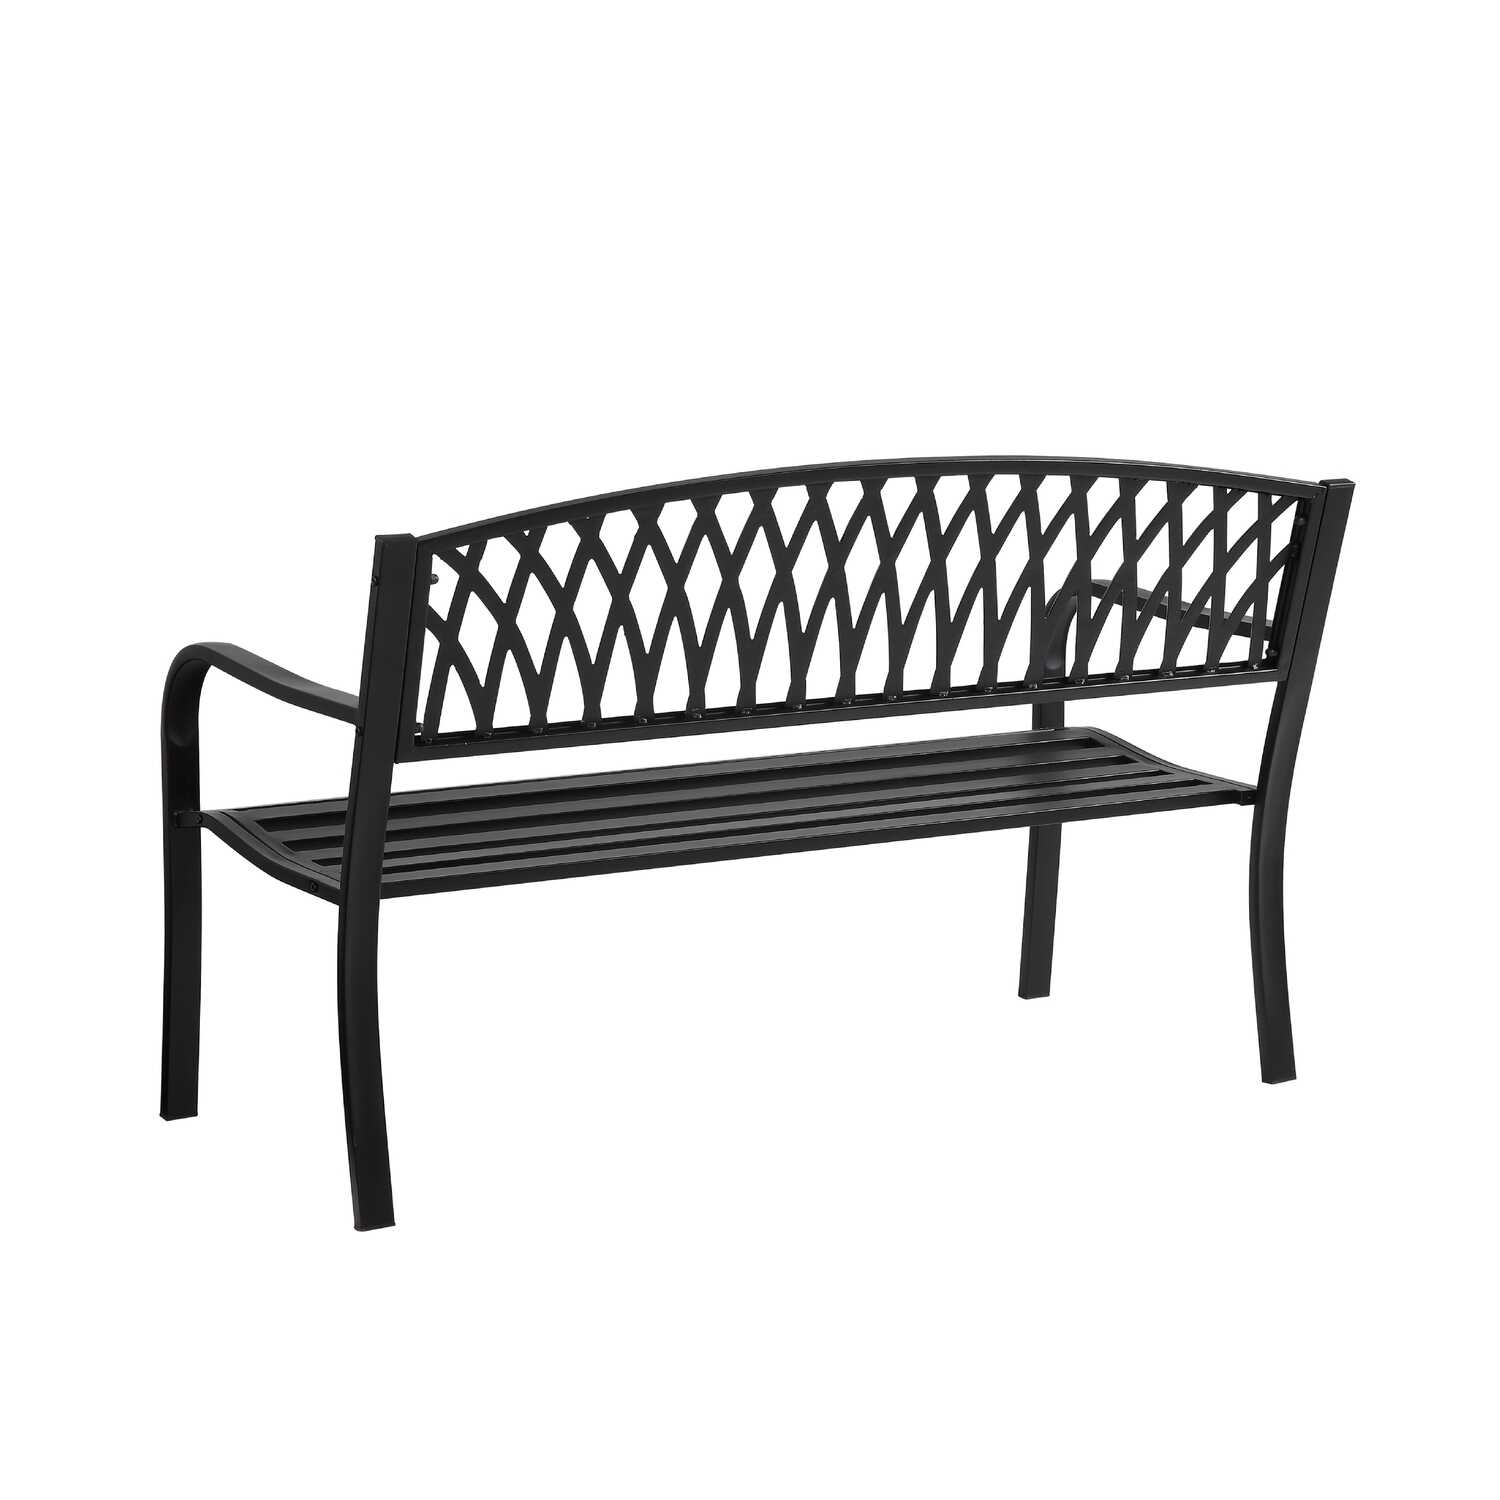 Living Accents Grass Back Park Bench Steel 33 46 In H X